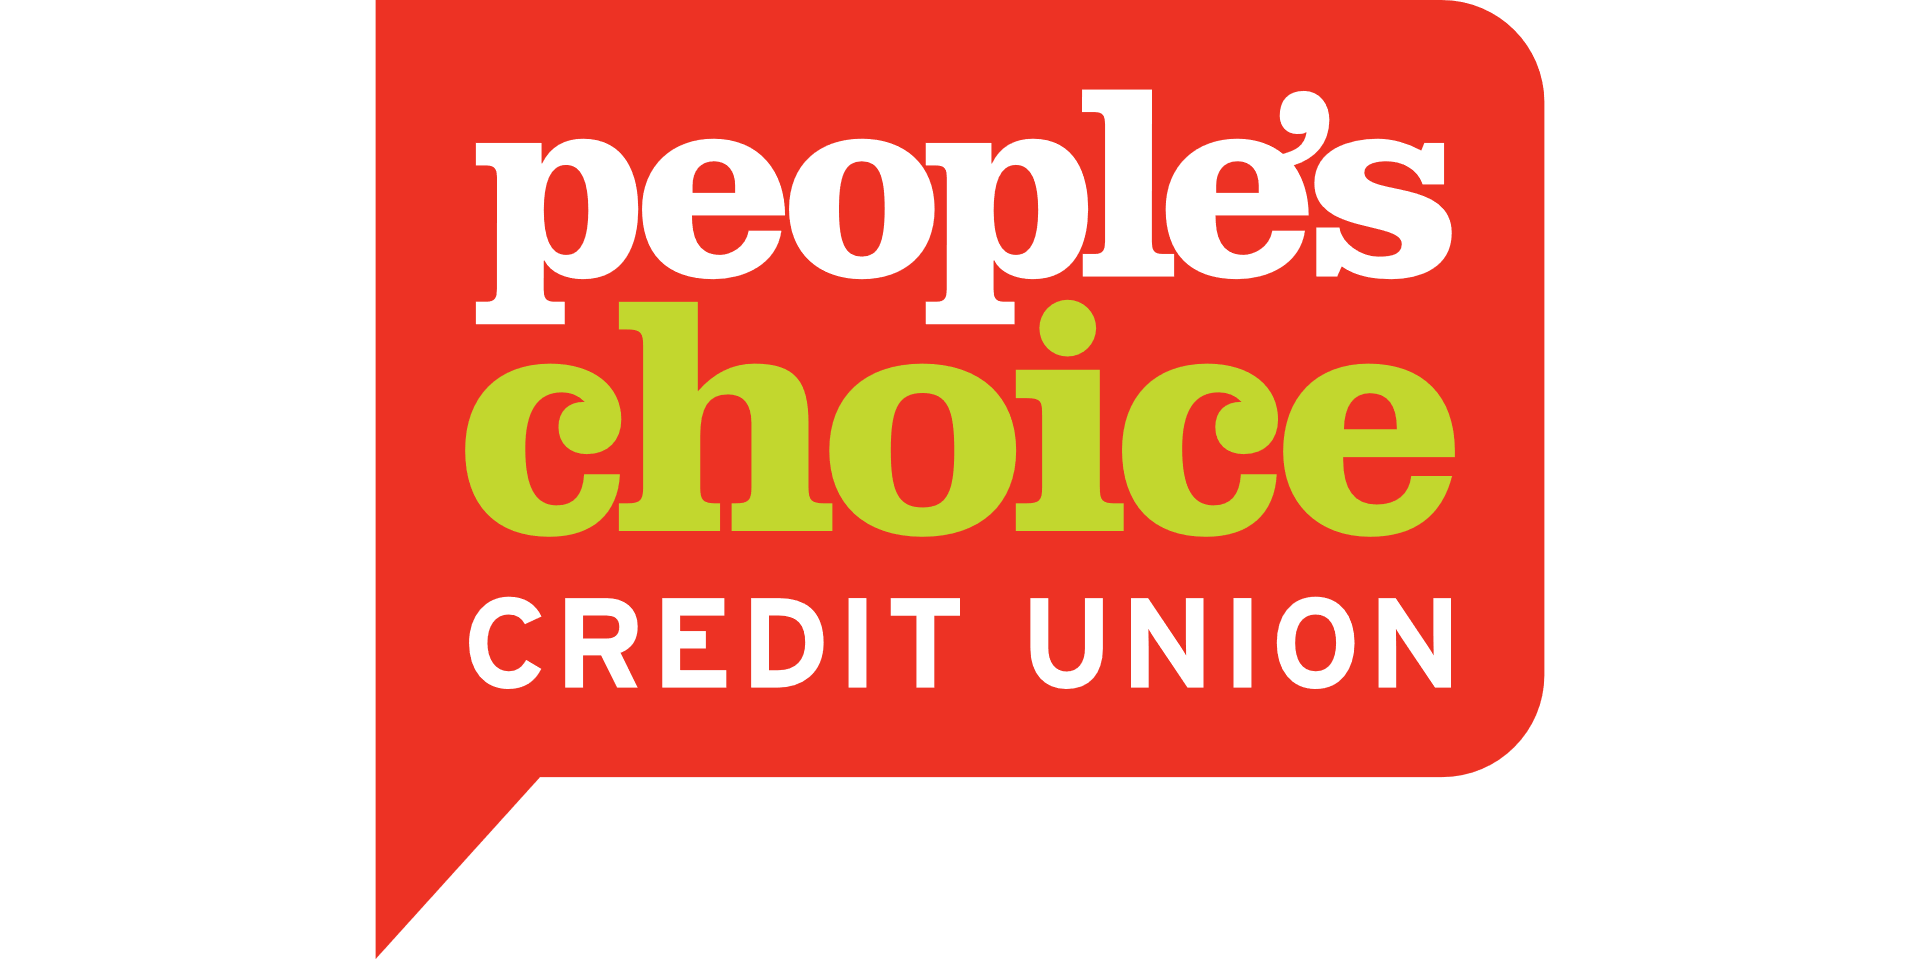 People's Choice Credit Union - Millicent, SA 5280 - (01) 3118 1182 | ShowMeLocal.com